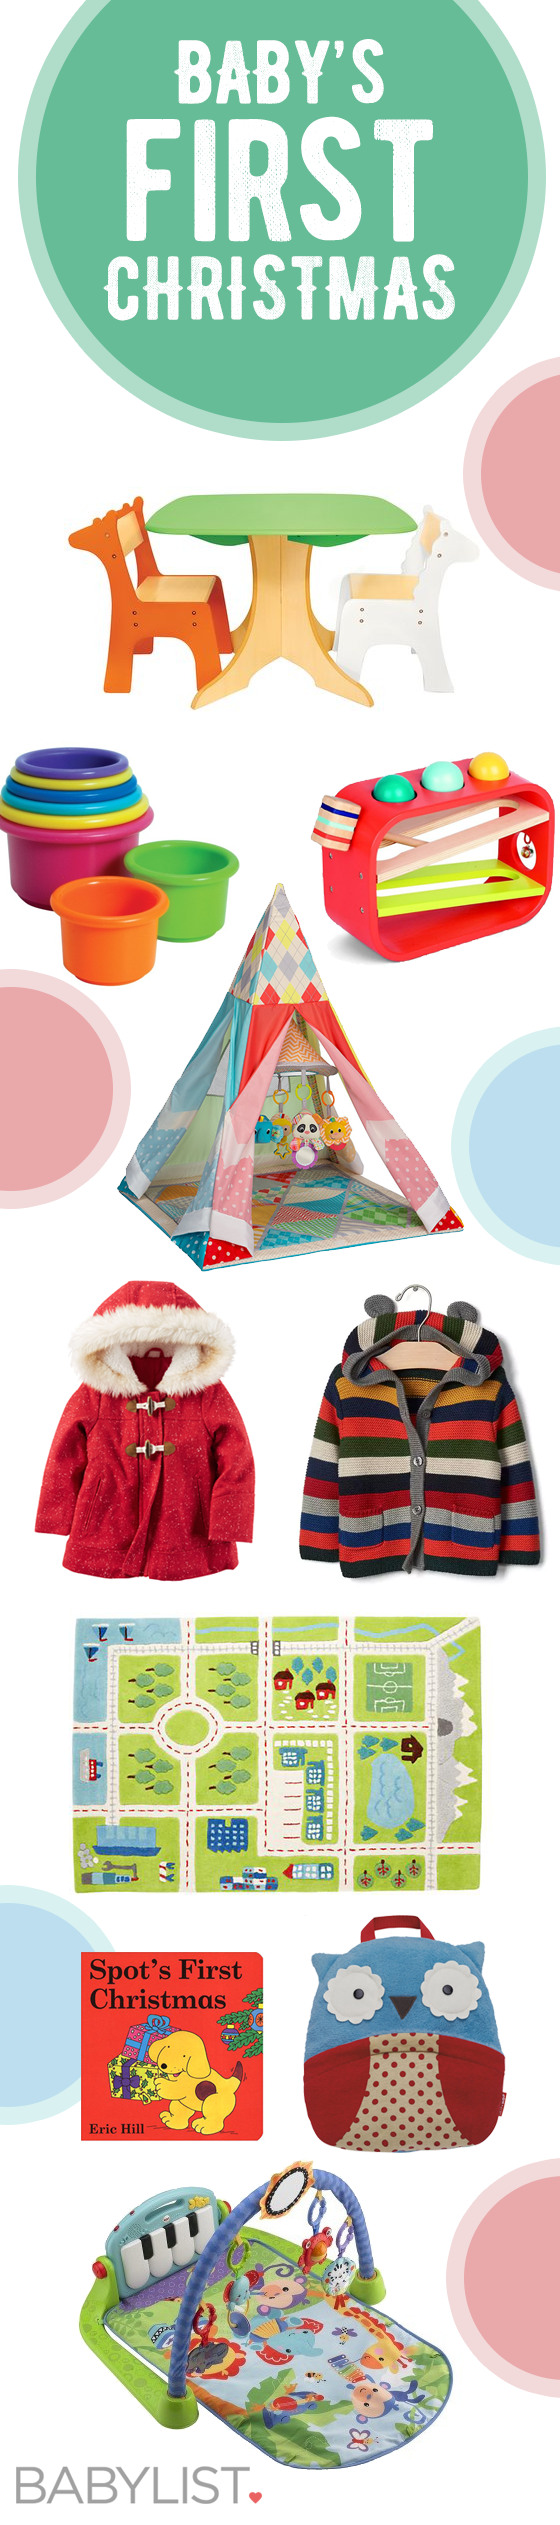 Ideas and inspiration for what to give your little one on their first Christmas ever.